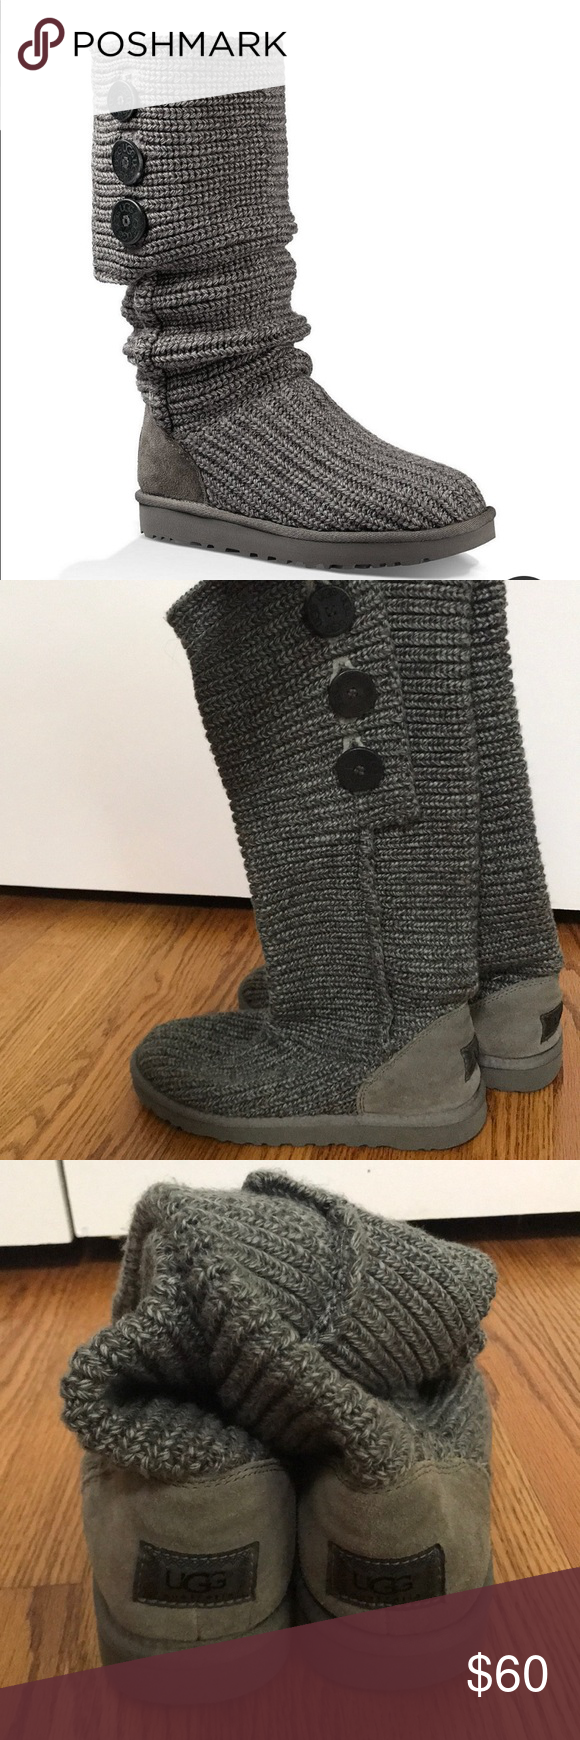 Ugg Boots Grey Knit Size 10 My Posh Picks Ugg Boots Uggs Boots